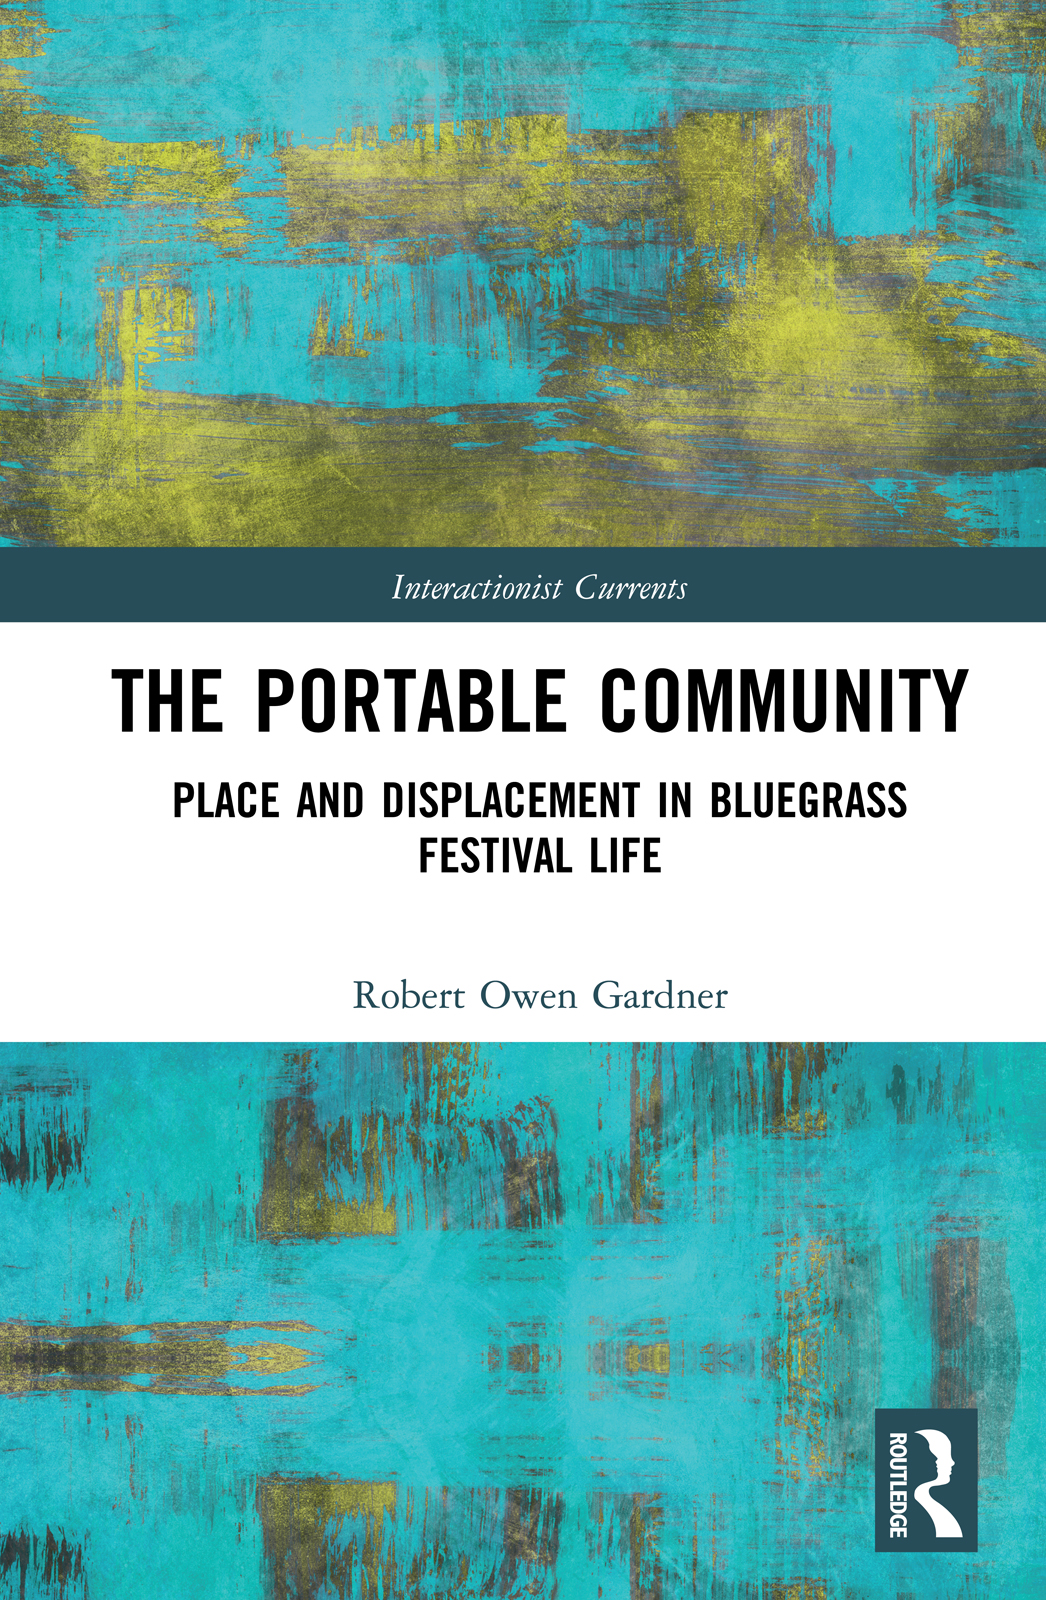 The Portable Community: Place and Displacement in Bluegrass Festival Life book cover